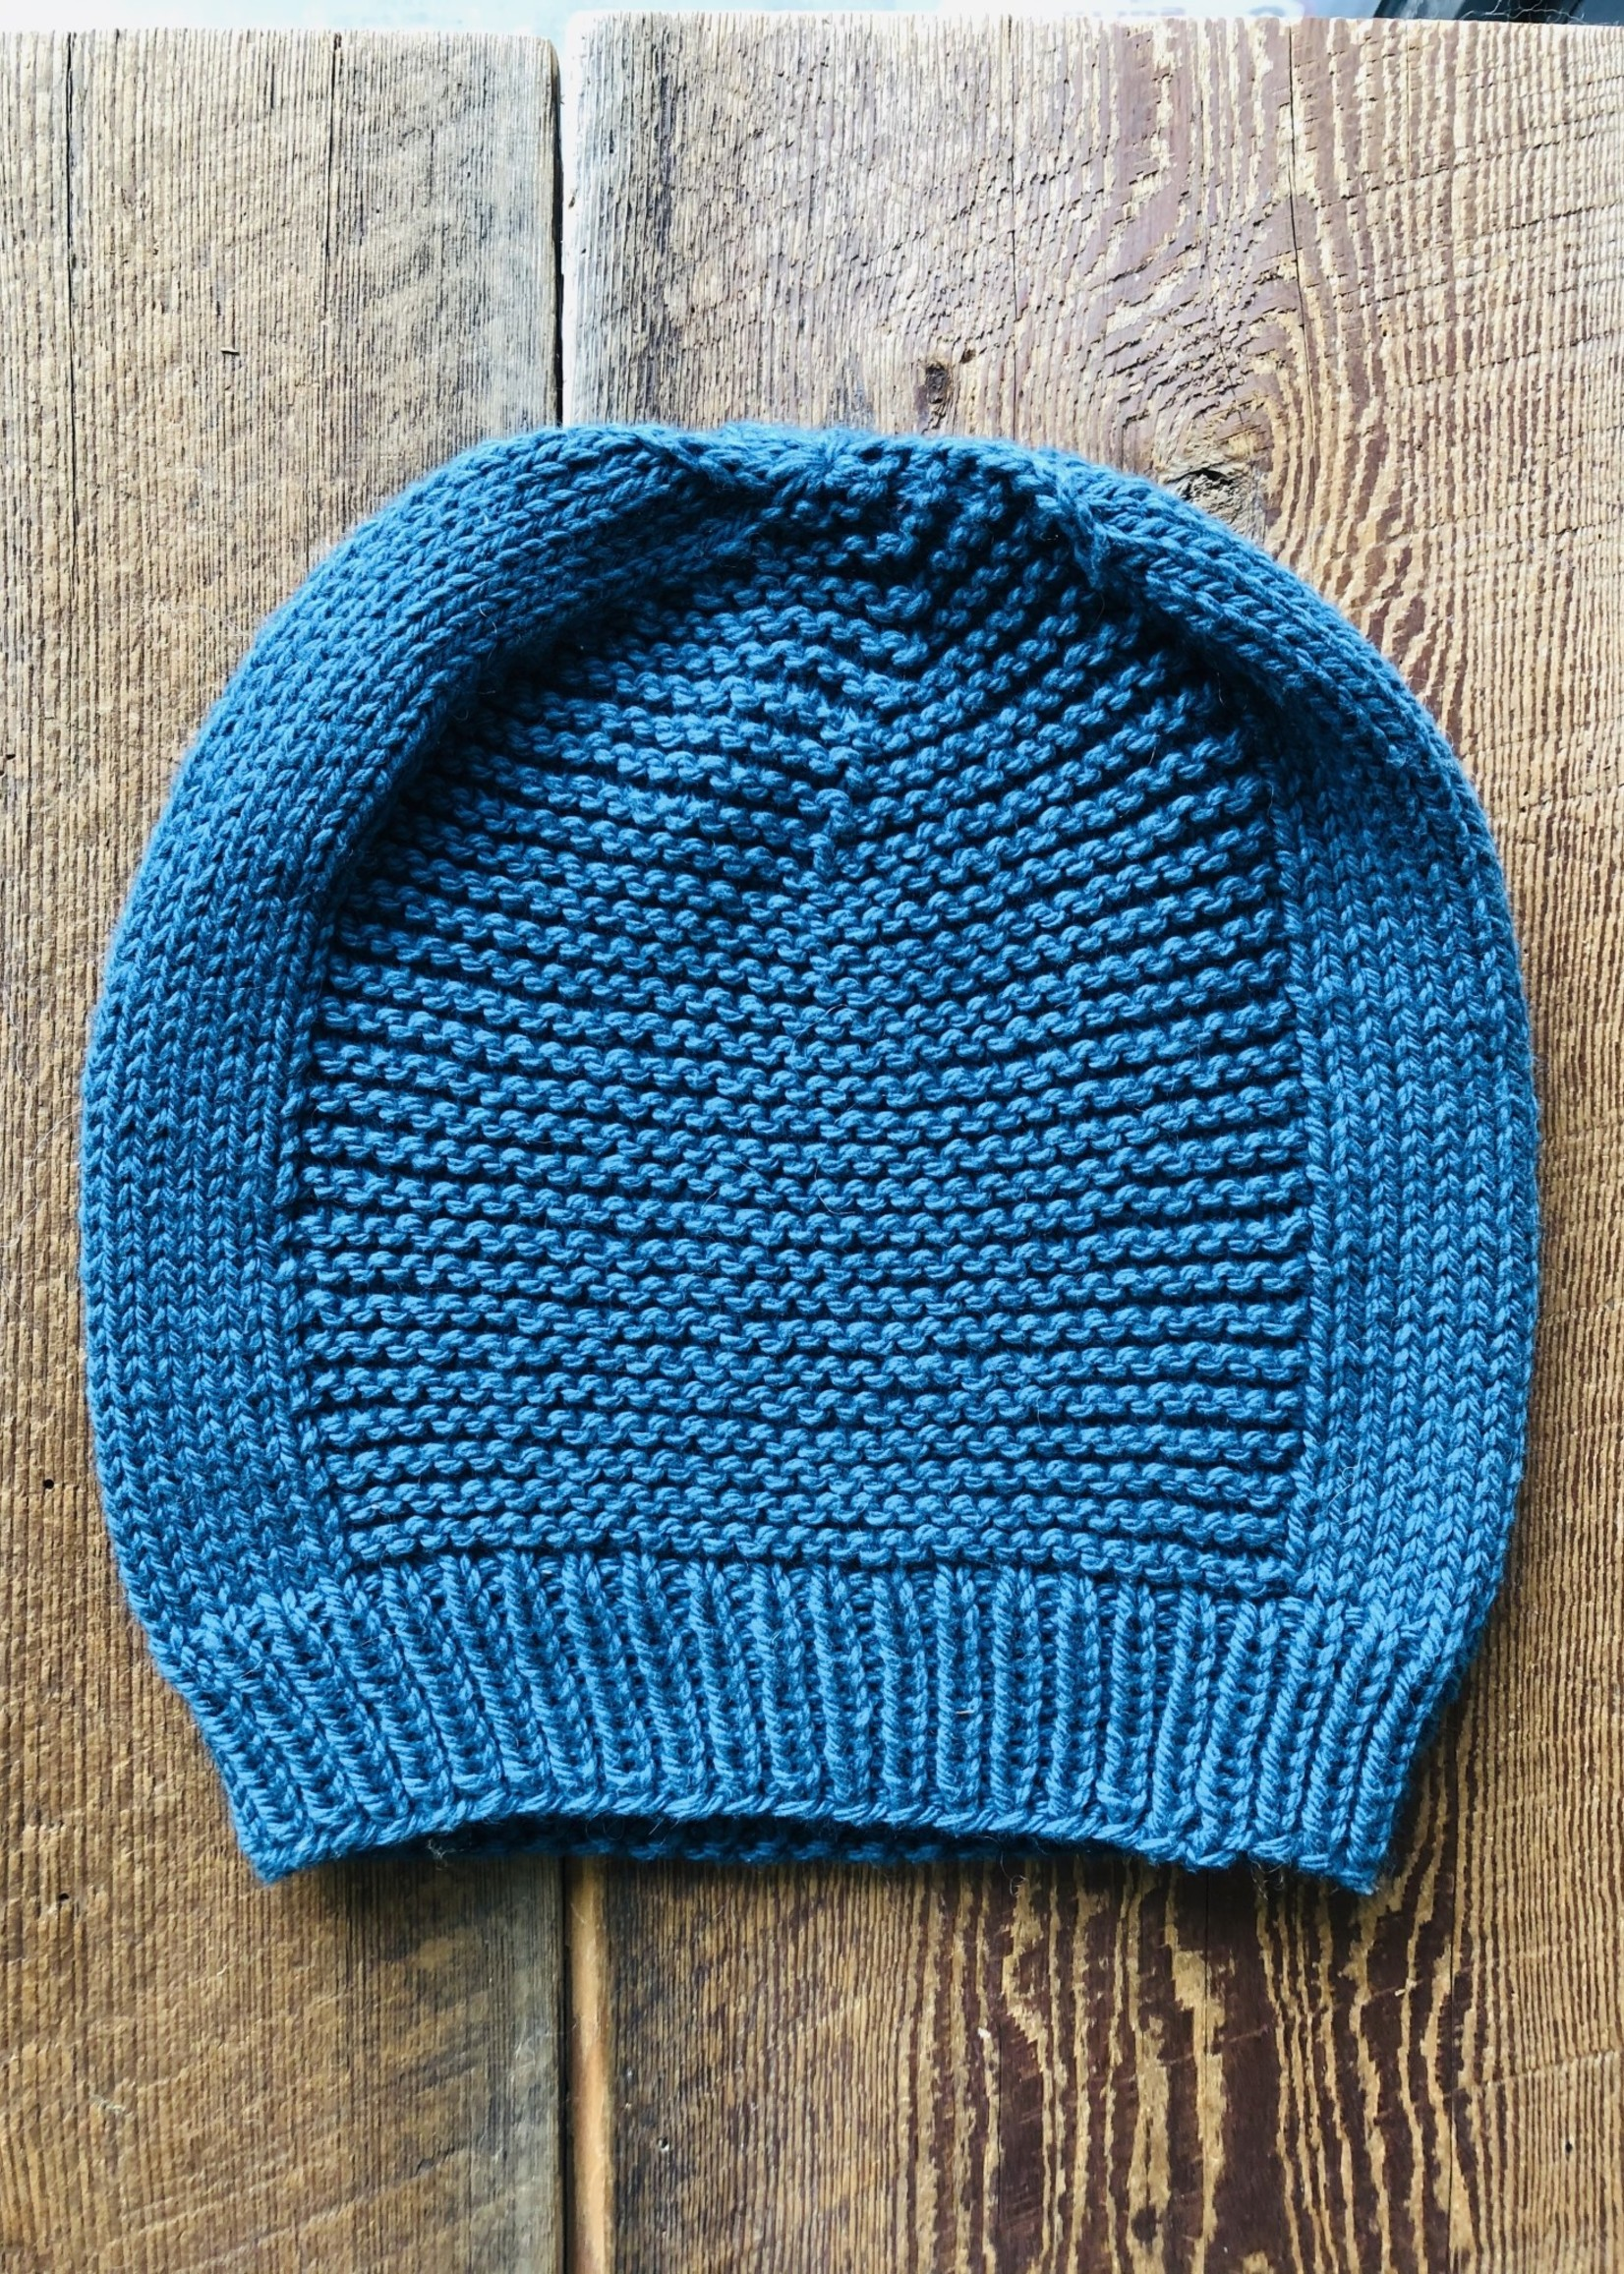 Wool and Cotton Barley Hat